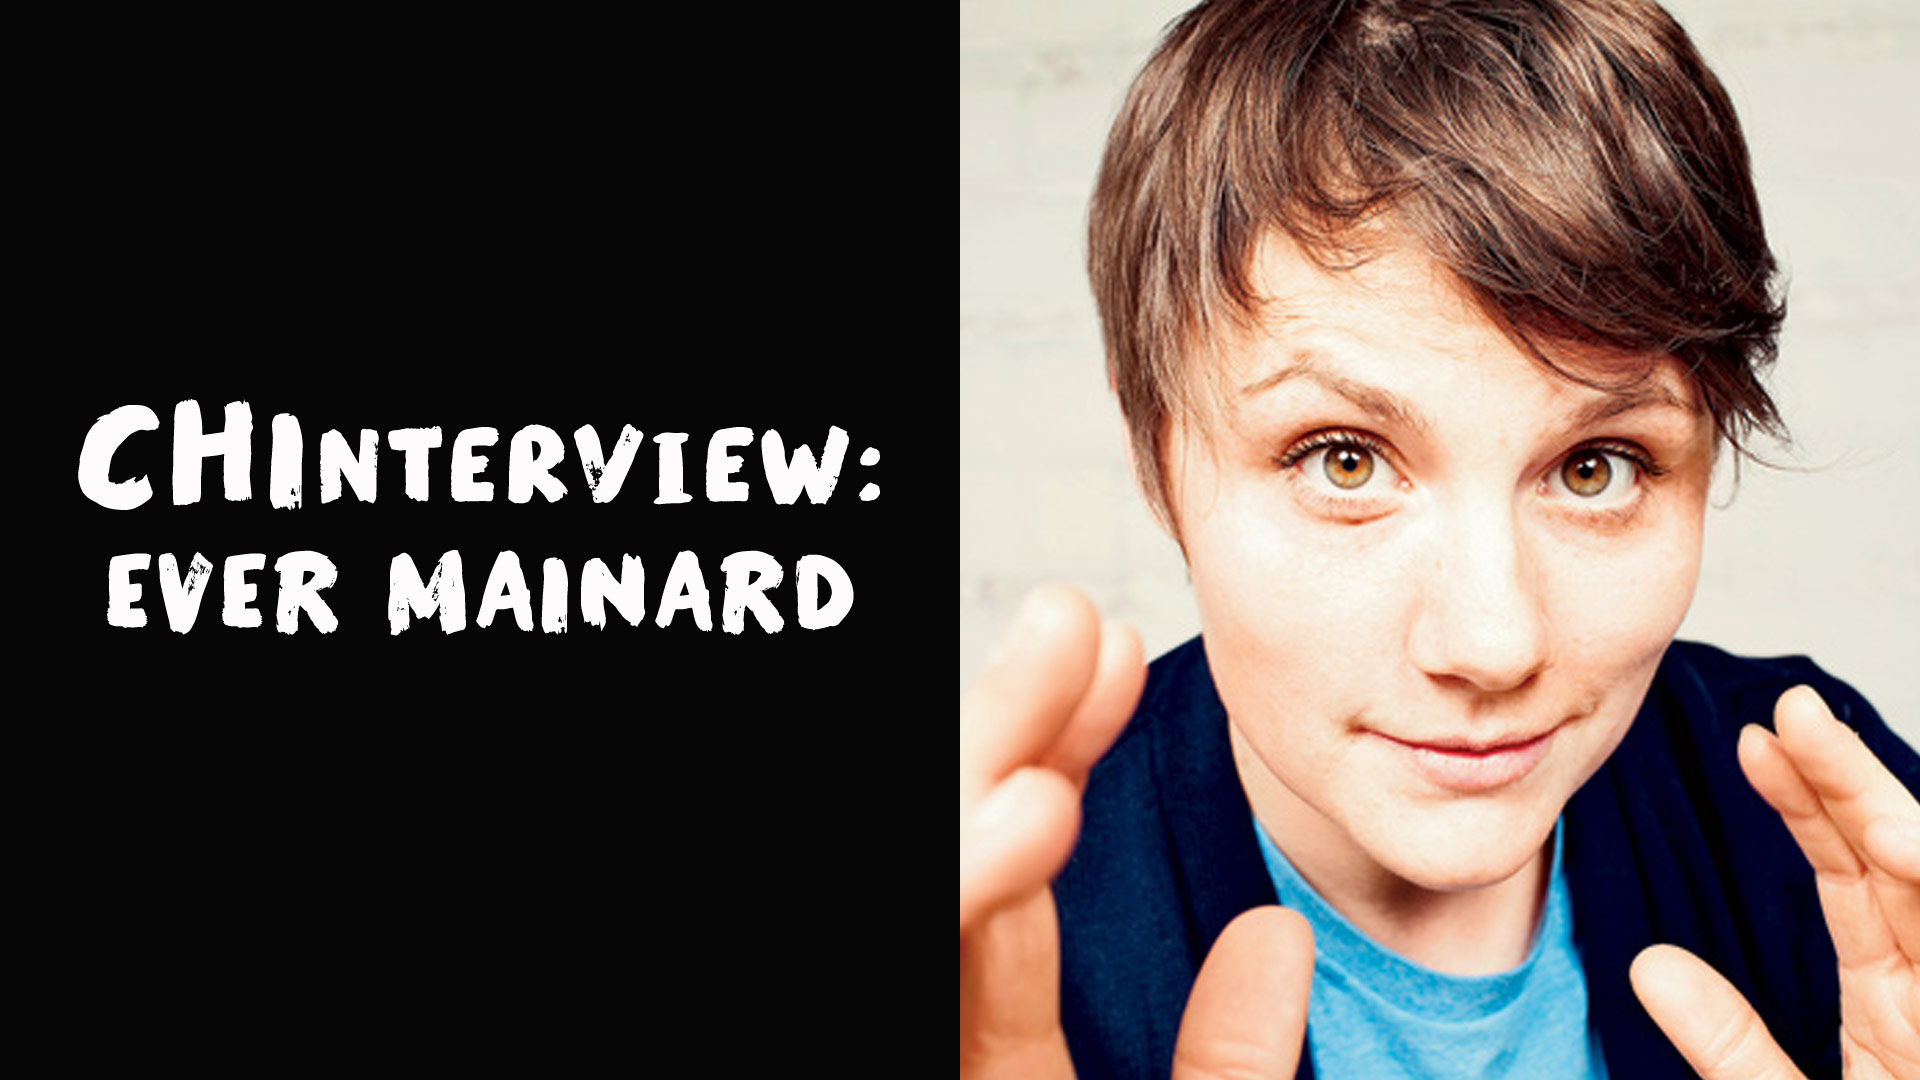 The CHInterview: Ever Mainard